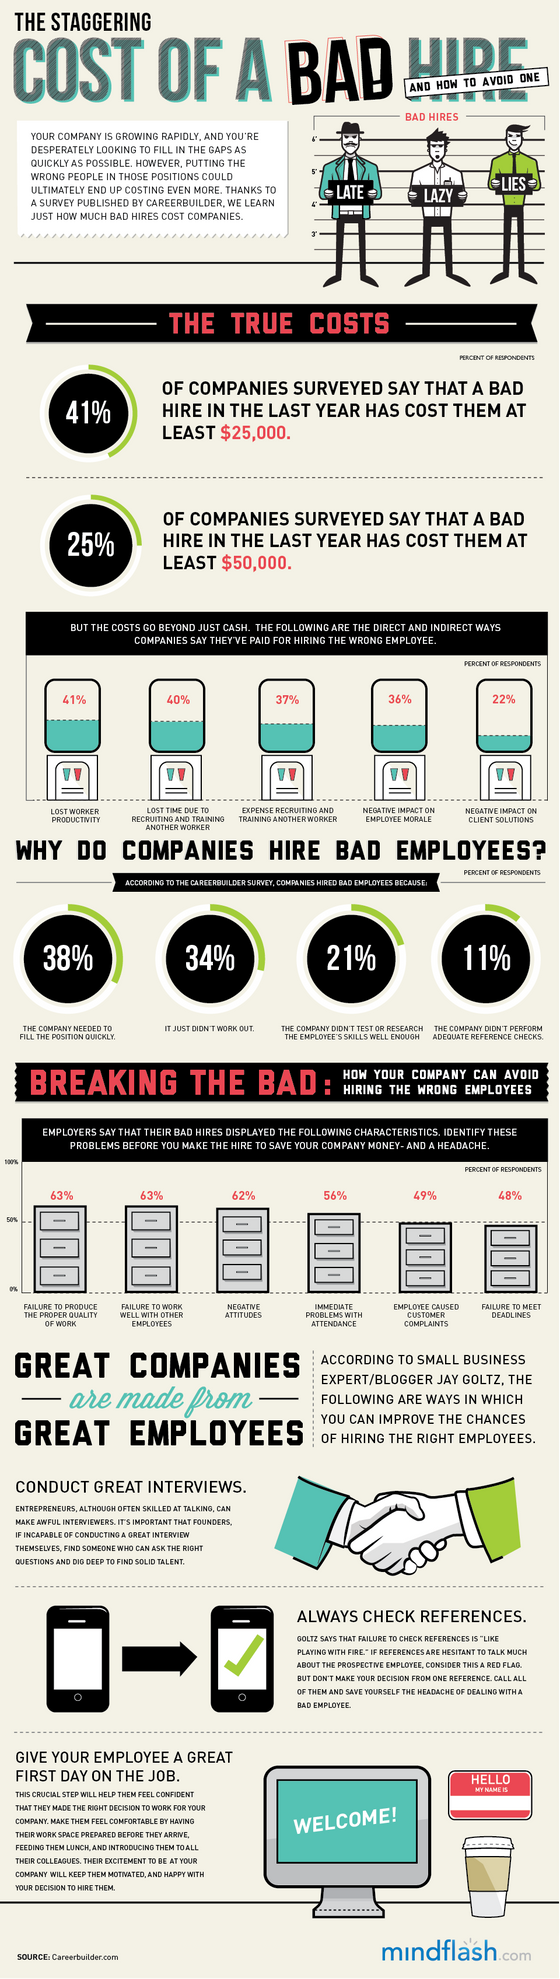 Infographic: What Does a Bad Hire Really Cost?